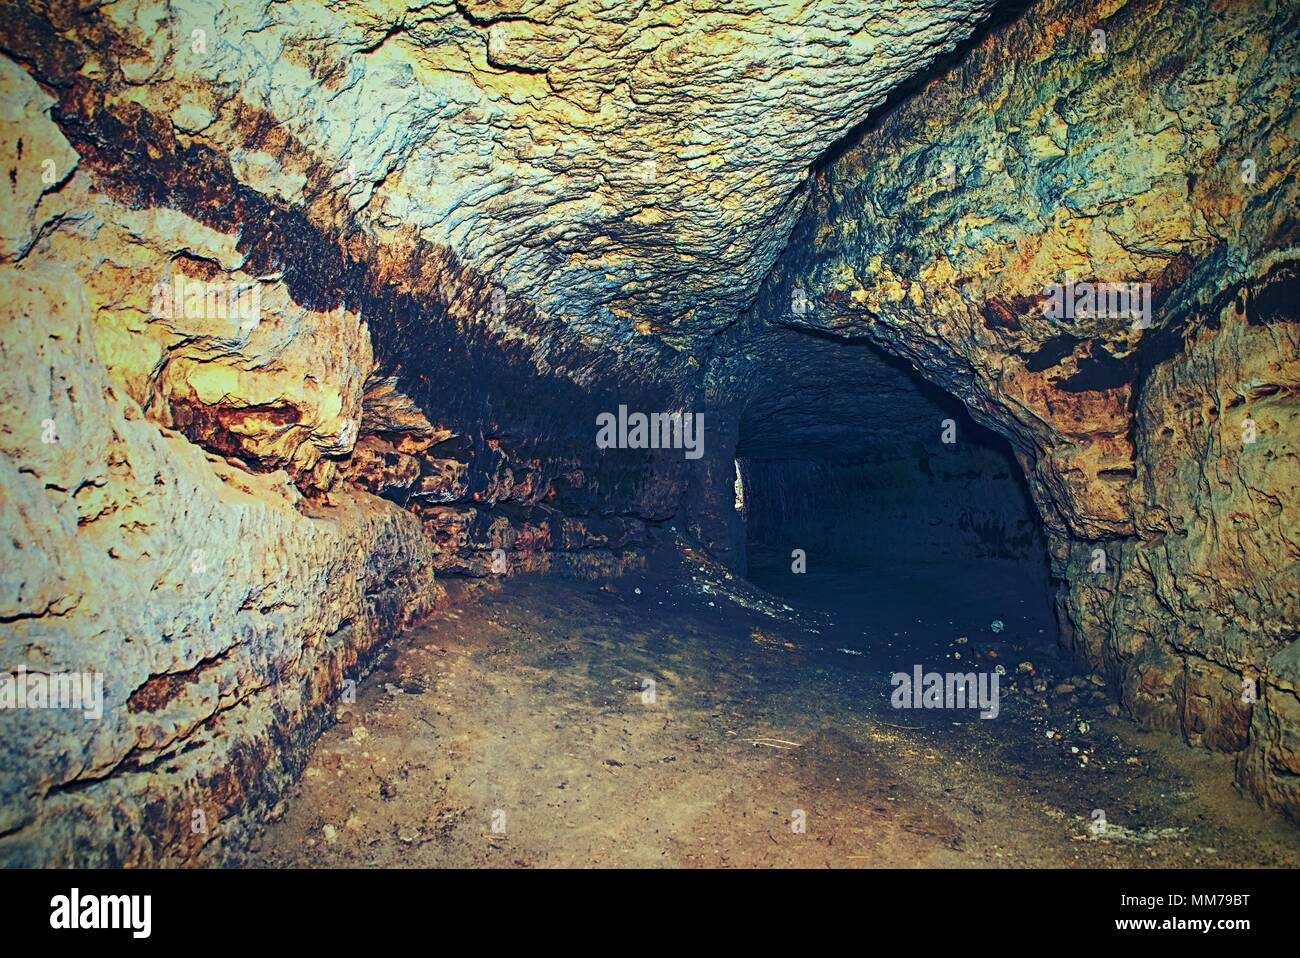 Bastion passage under city. Old catacombs built in orange sandstone rock.  The underground passages built by men for the defense during the war - Stock Image